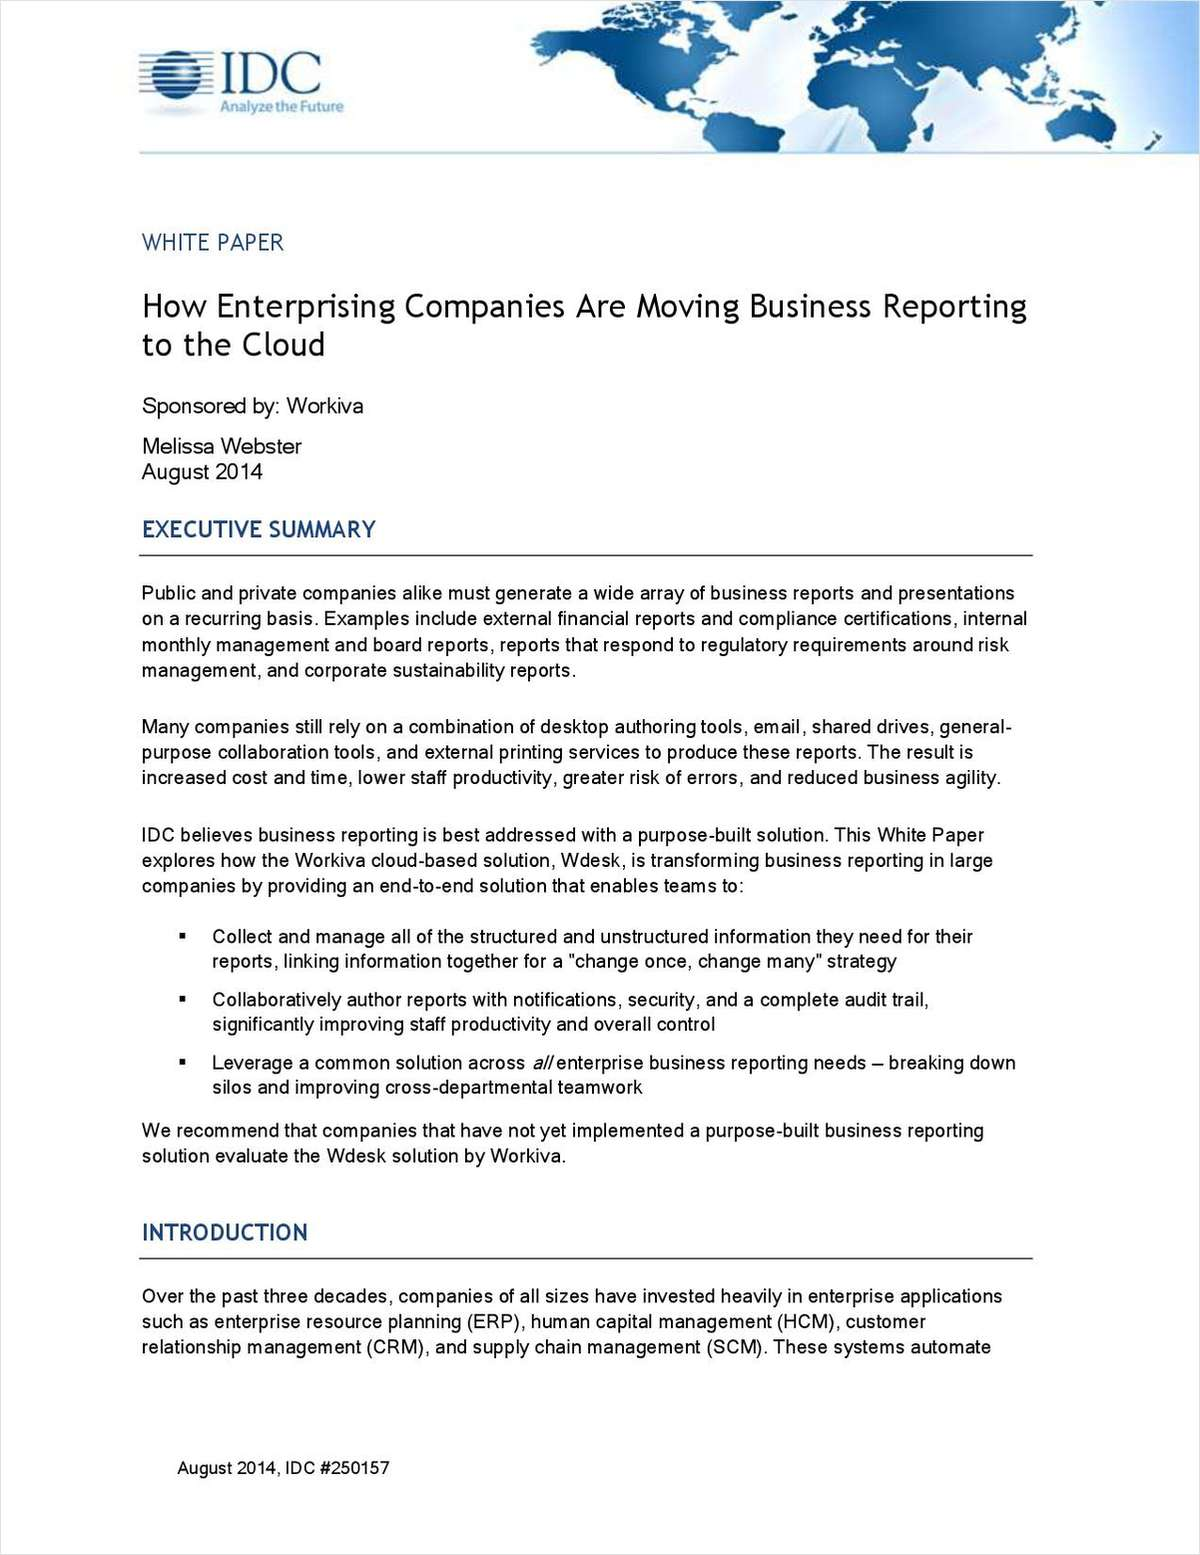 How Enterprising Companies Are Moving Business Reporting to the Cloud